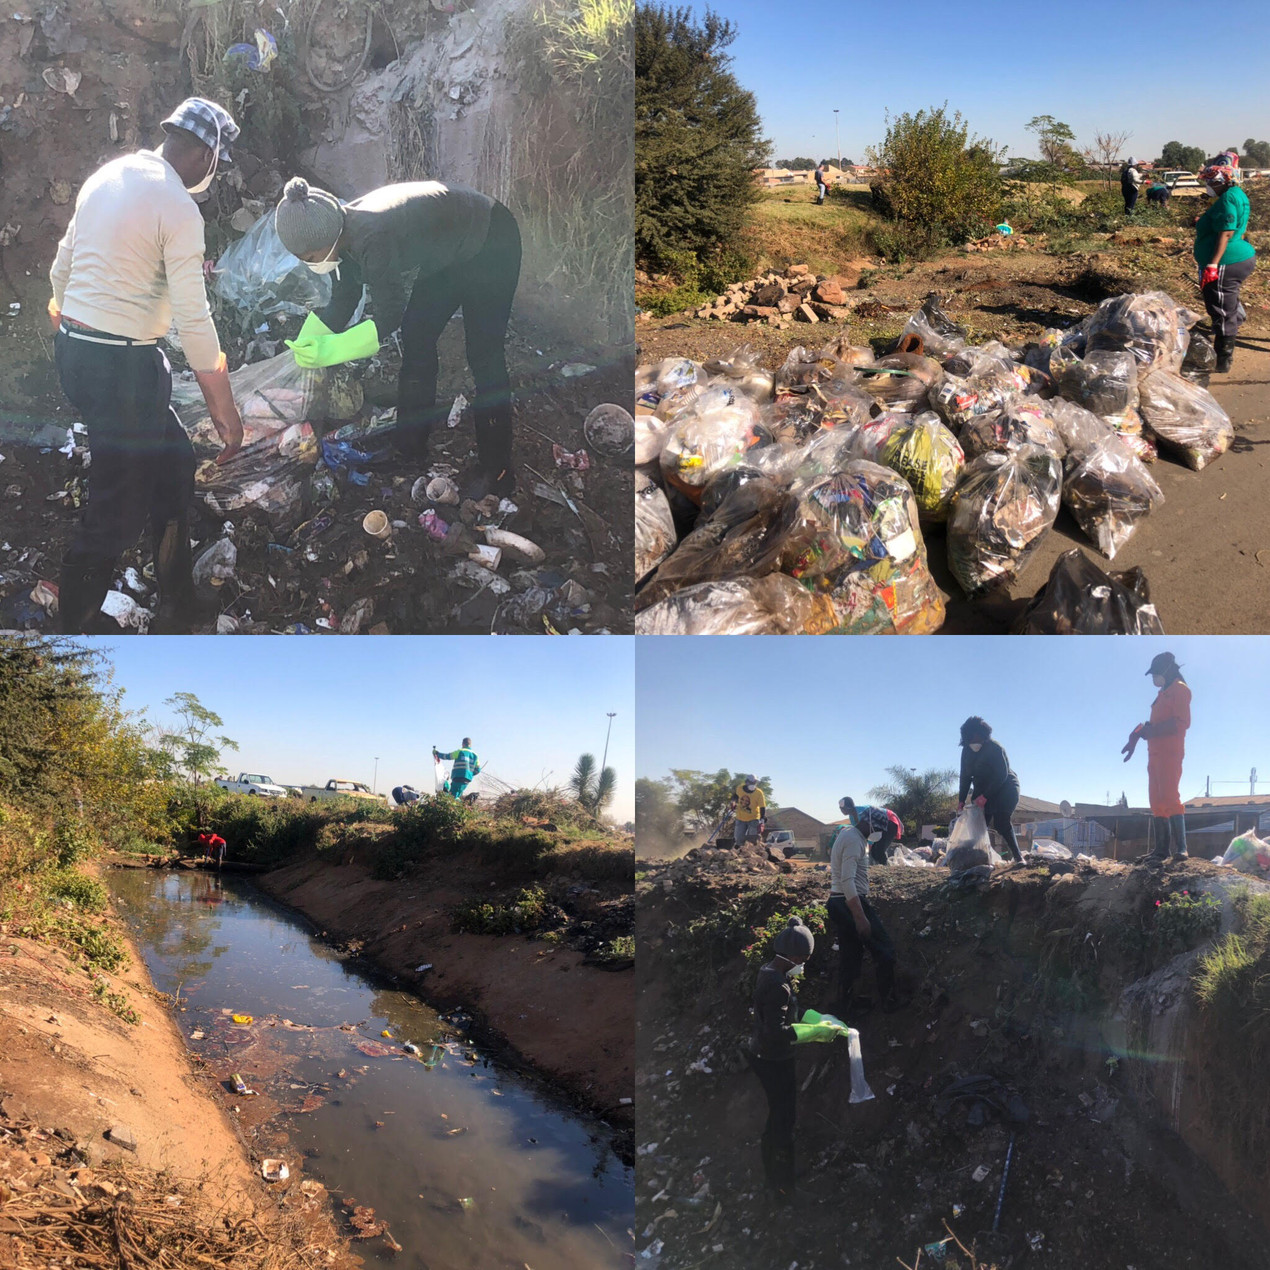 Ongoing struggle against waste and dumping